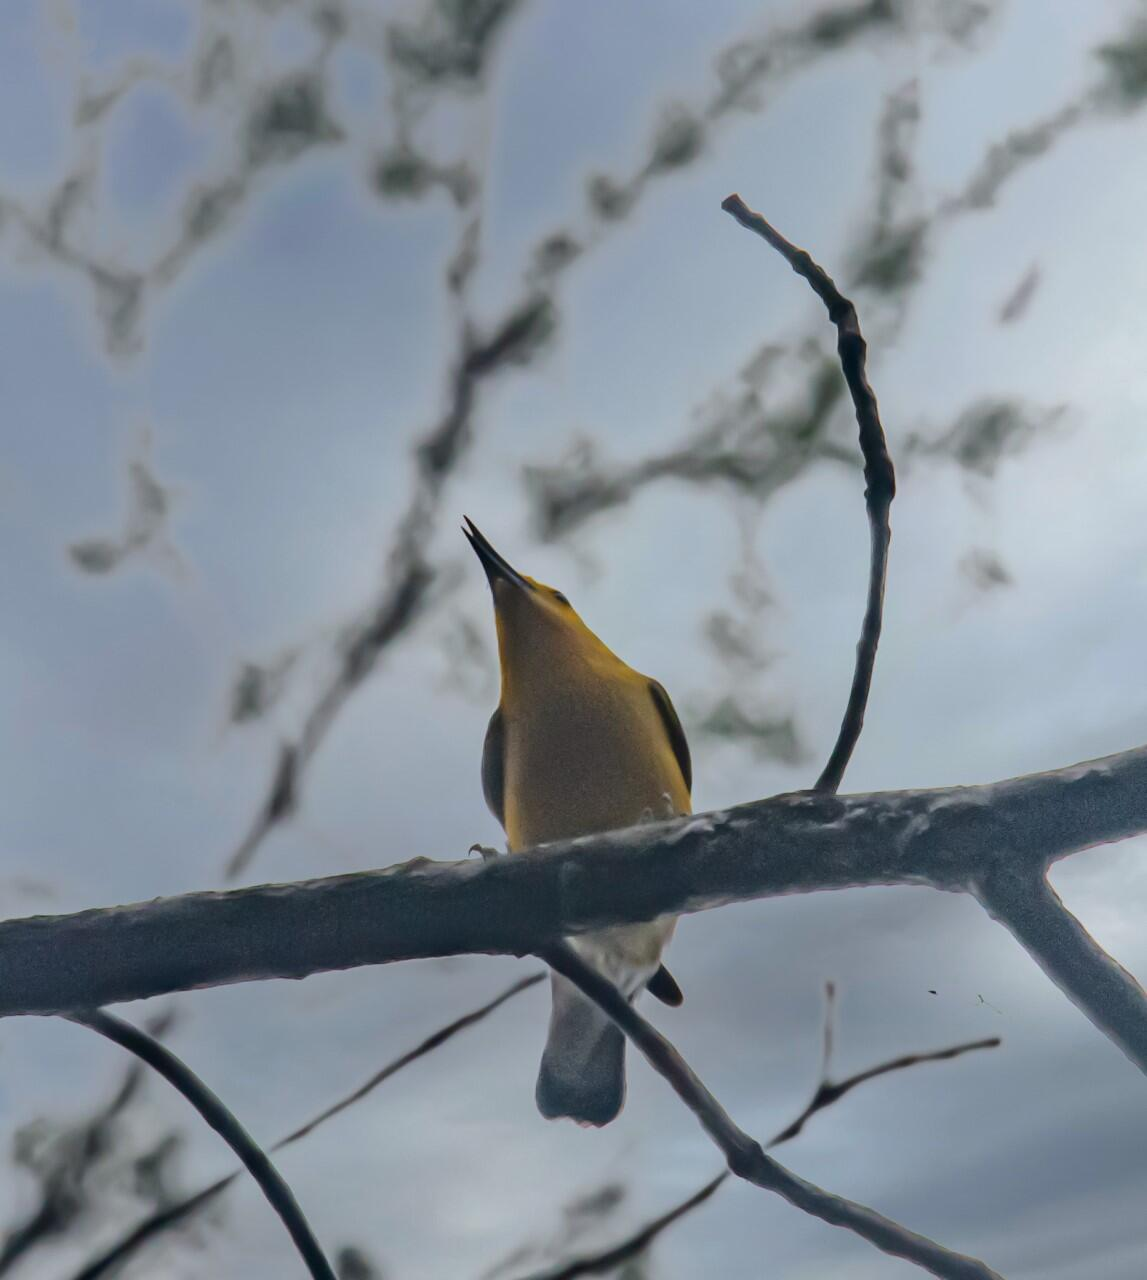 This picture was taken looking up at a yellow bird with slender long beak perched high up on a branch with light blue sky behind the bird.